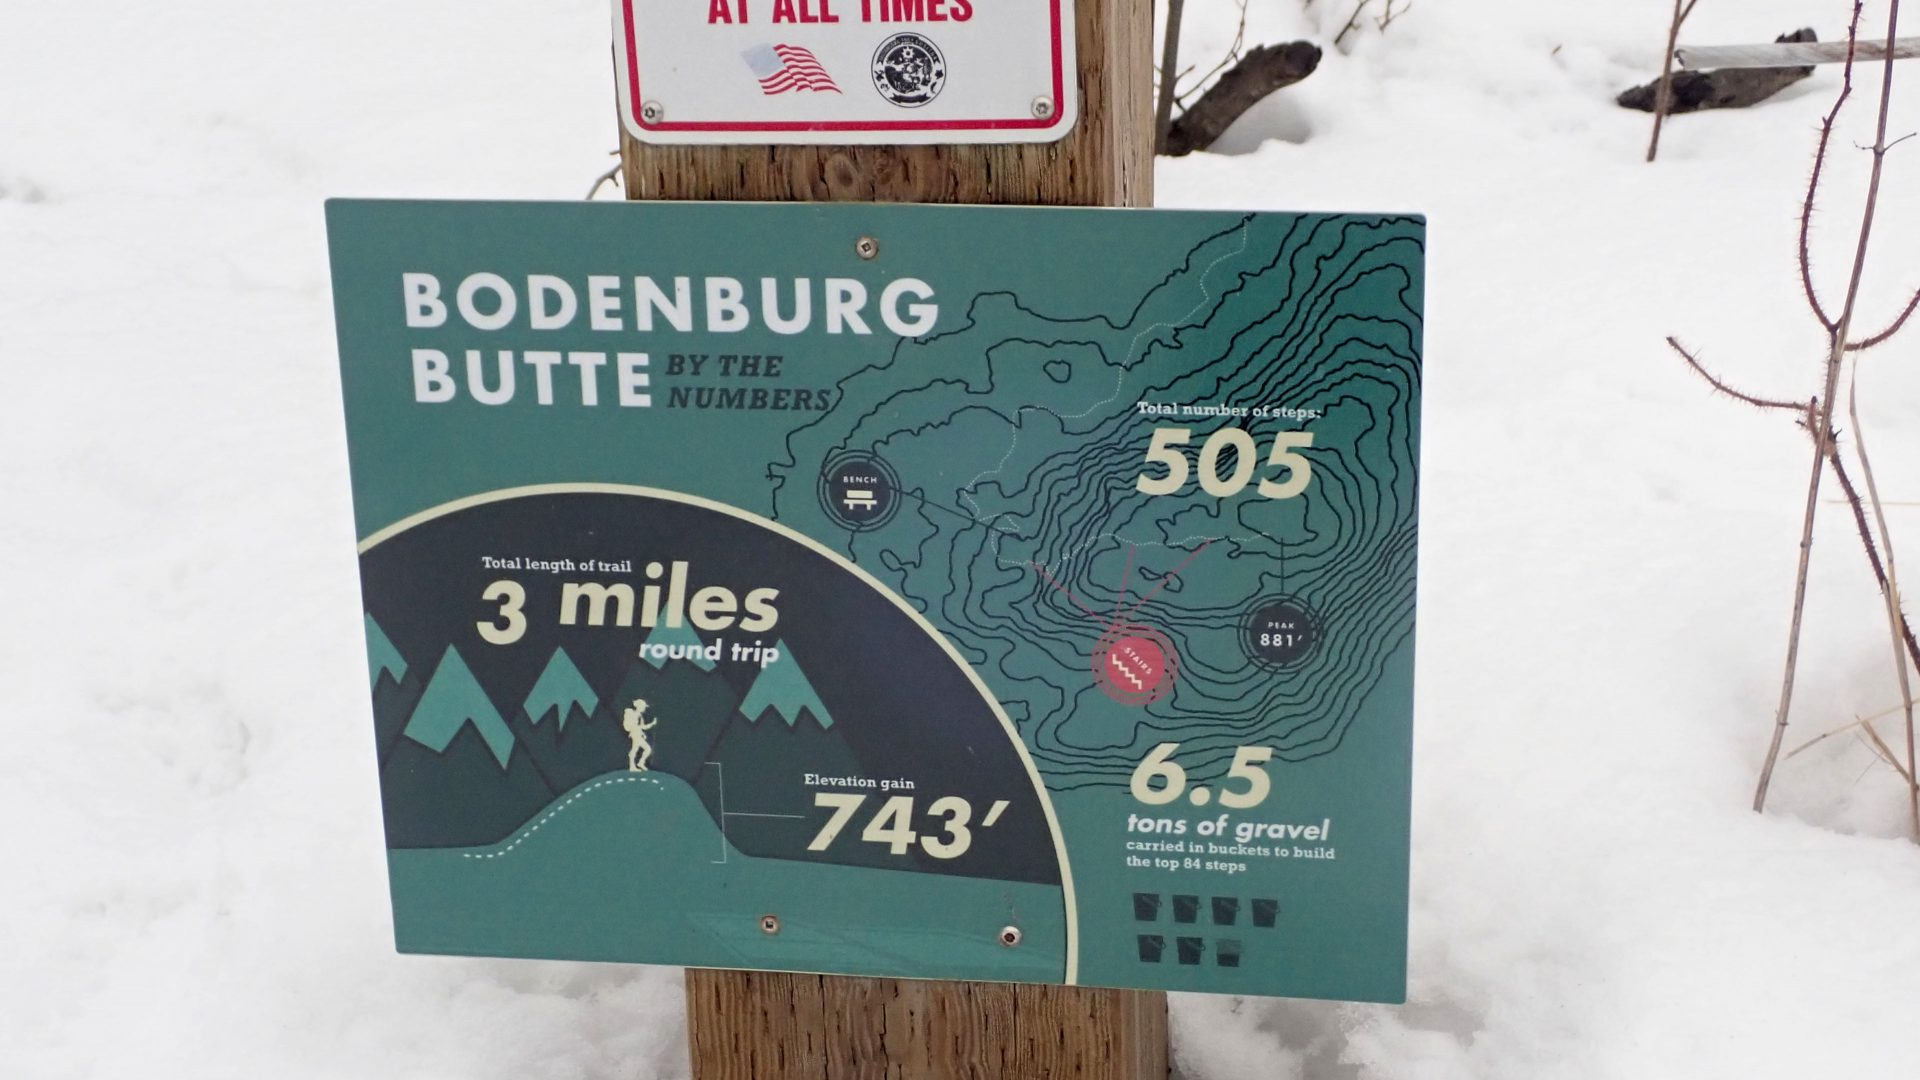 Map of Bodenburg Butte trail